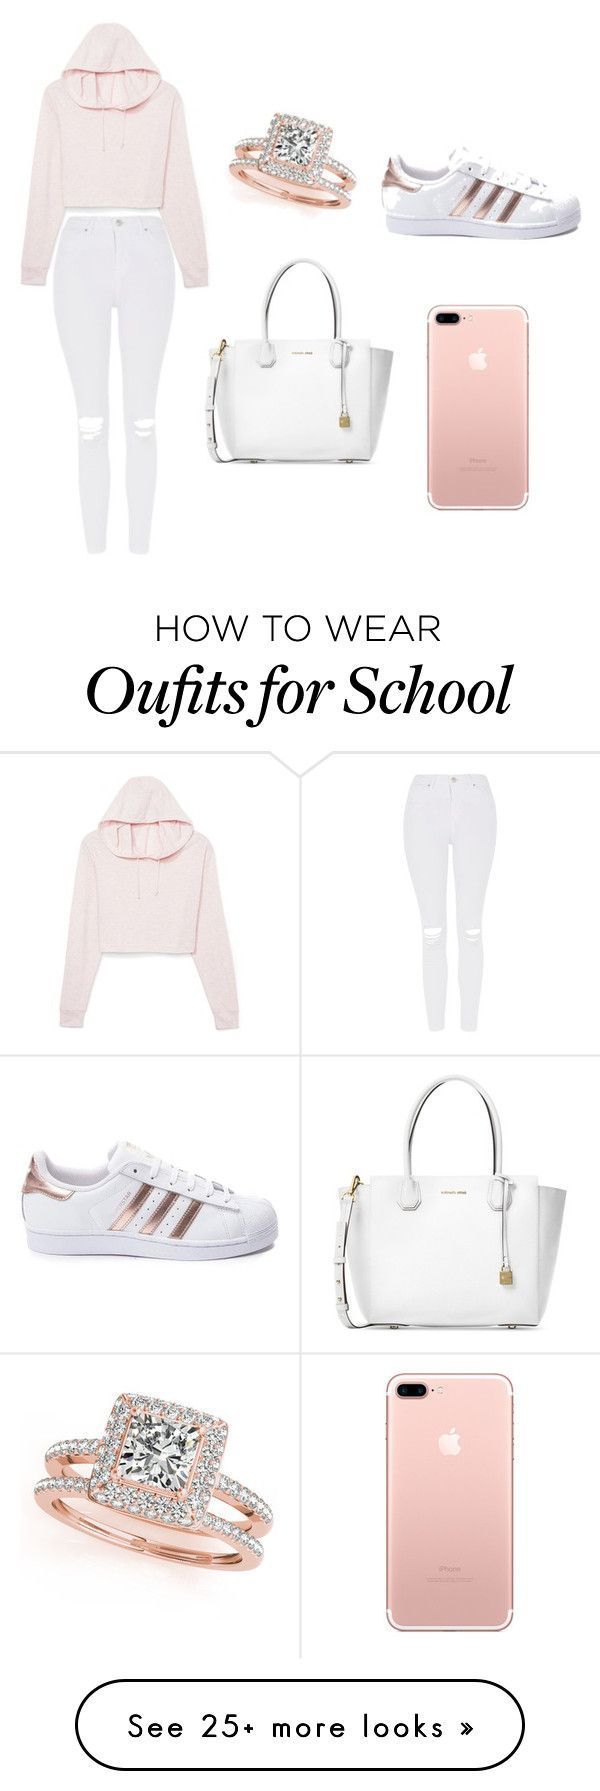 """school outfit"" by ashlehhfhbffg on Polyvore featuring Michael Kors, Topshop, adidas and Allurez"